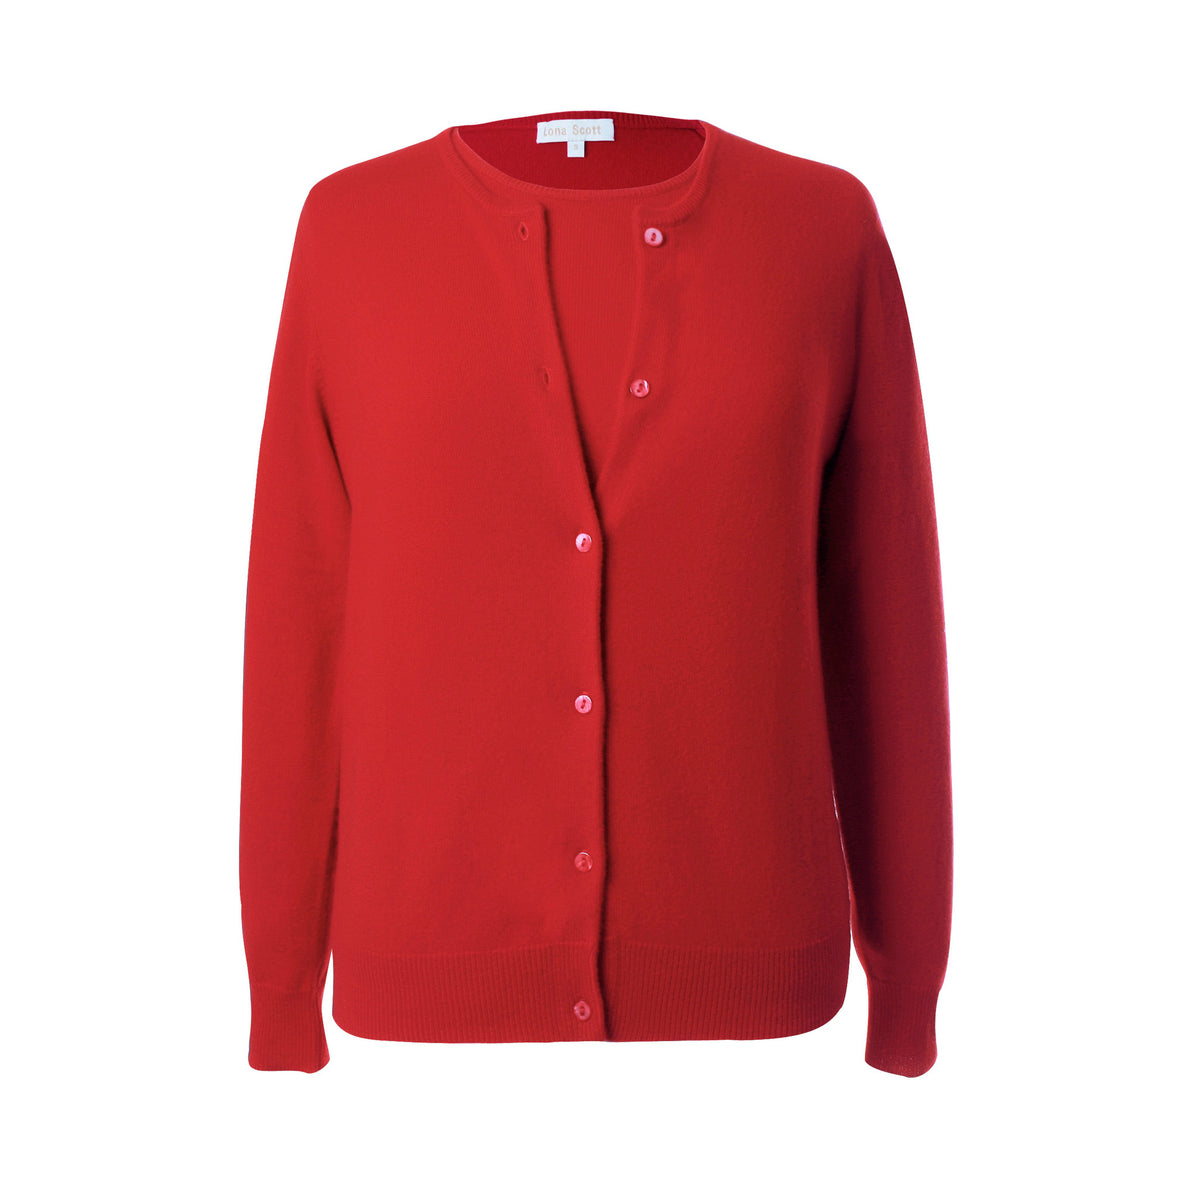 Ladies Red Cashmere Sweater Set | Cardigan | The Cashmere Choice London